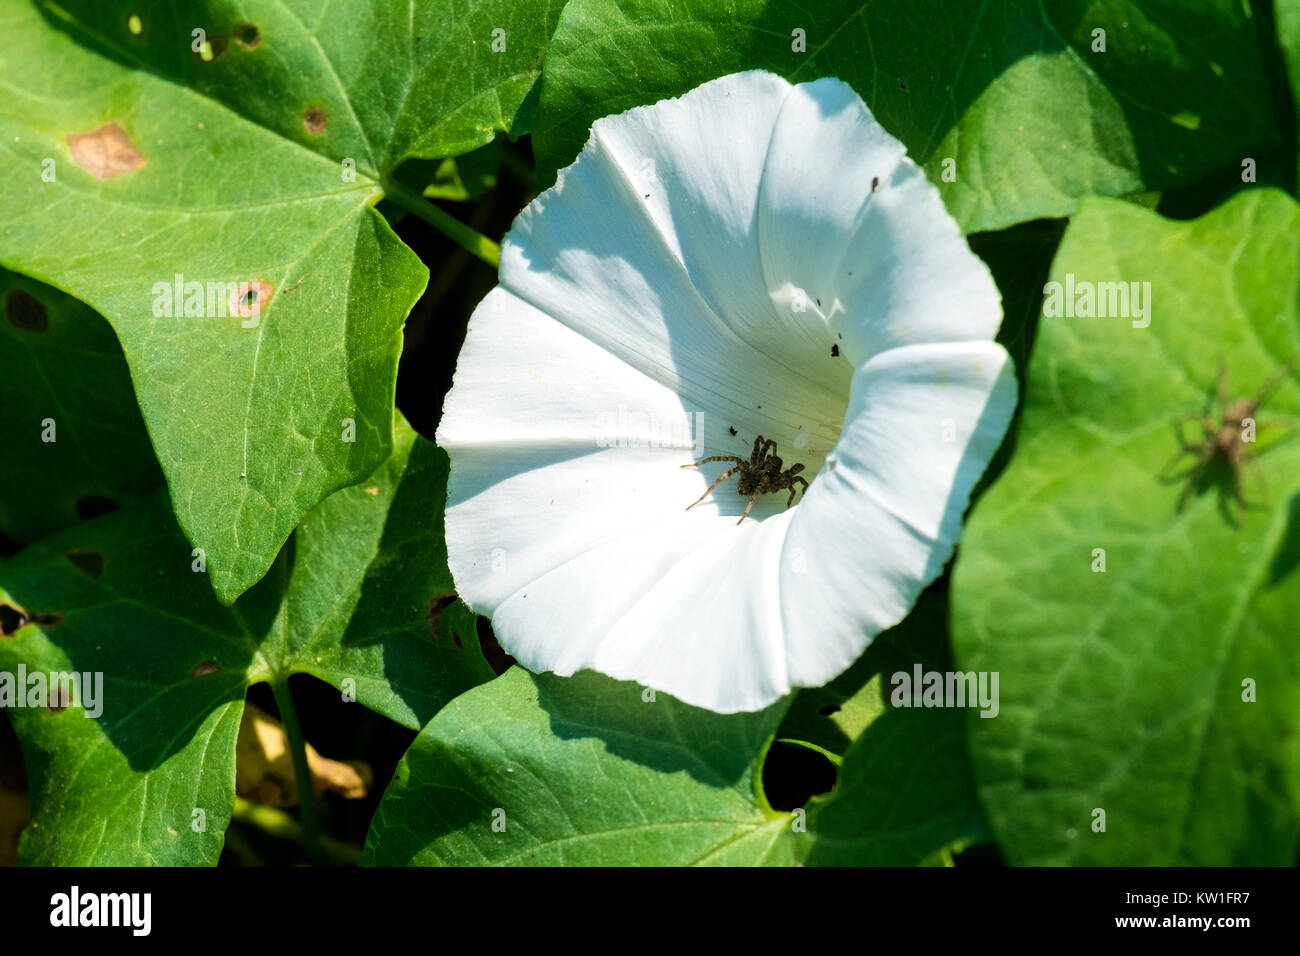 White cone-shaped flower of hedge bindweed with a small spider inside (Calystegia sepium) - Stock Image